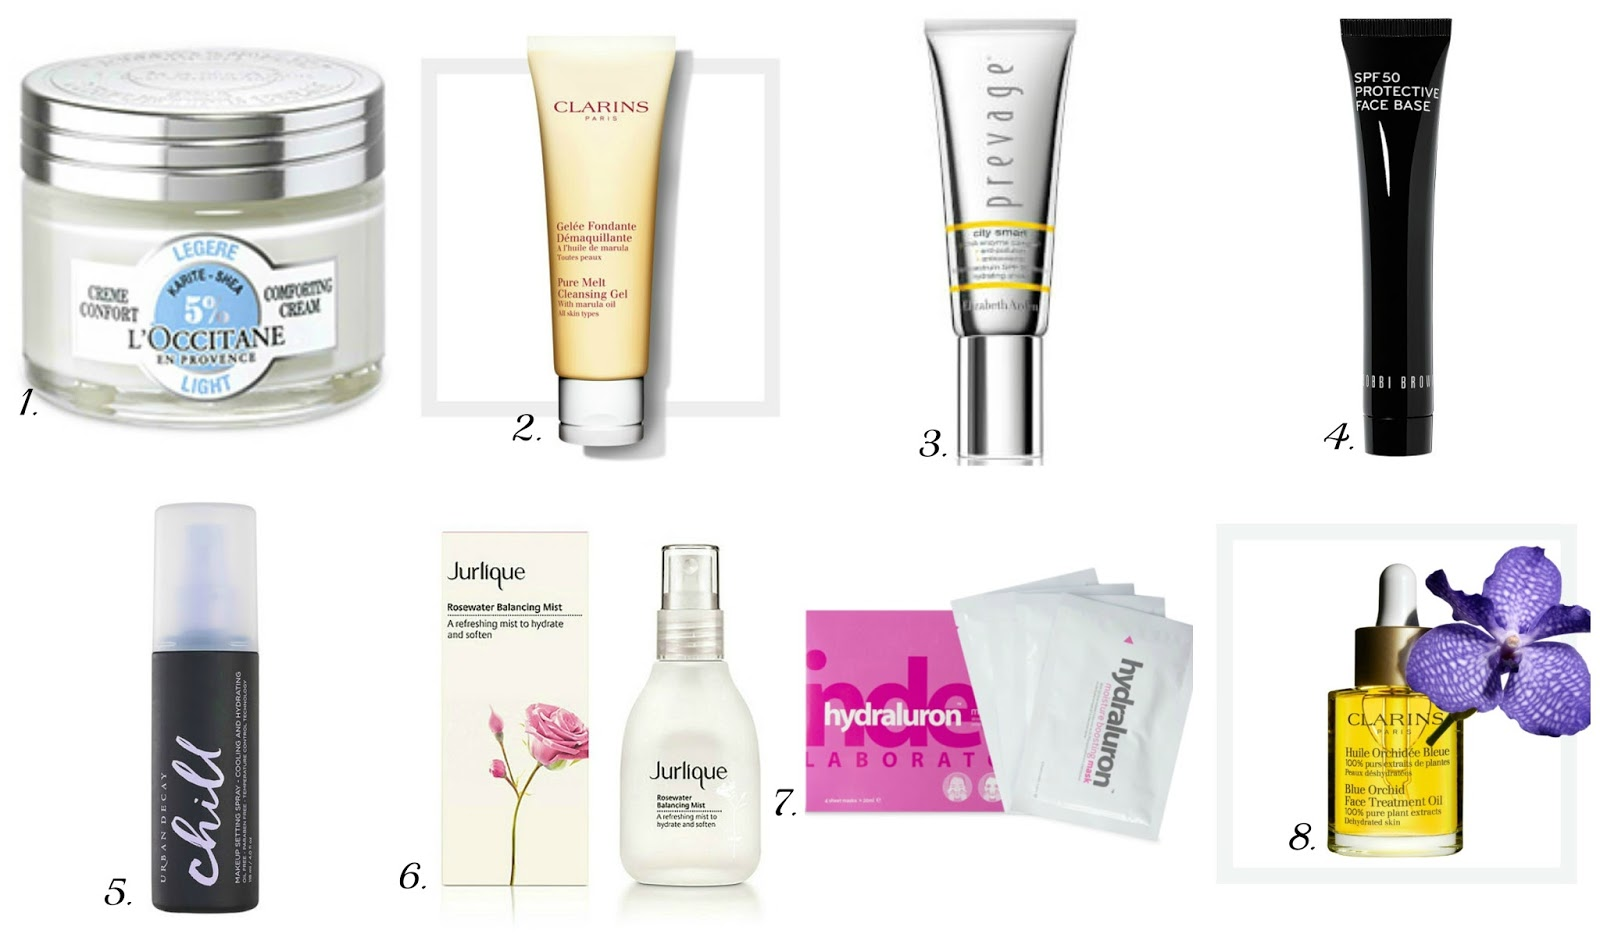 My Summer Skincare Wishlist, Featuring L'Occitane, Clarins, Bobbi Brown, Jurlique and More